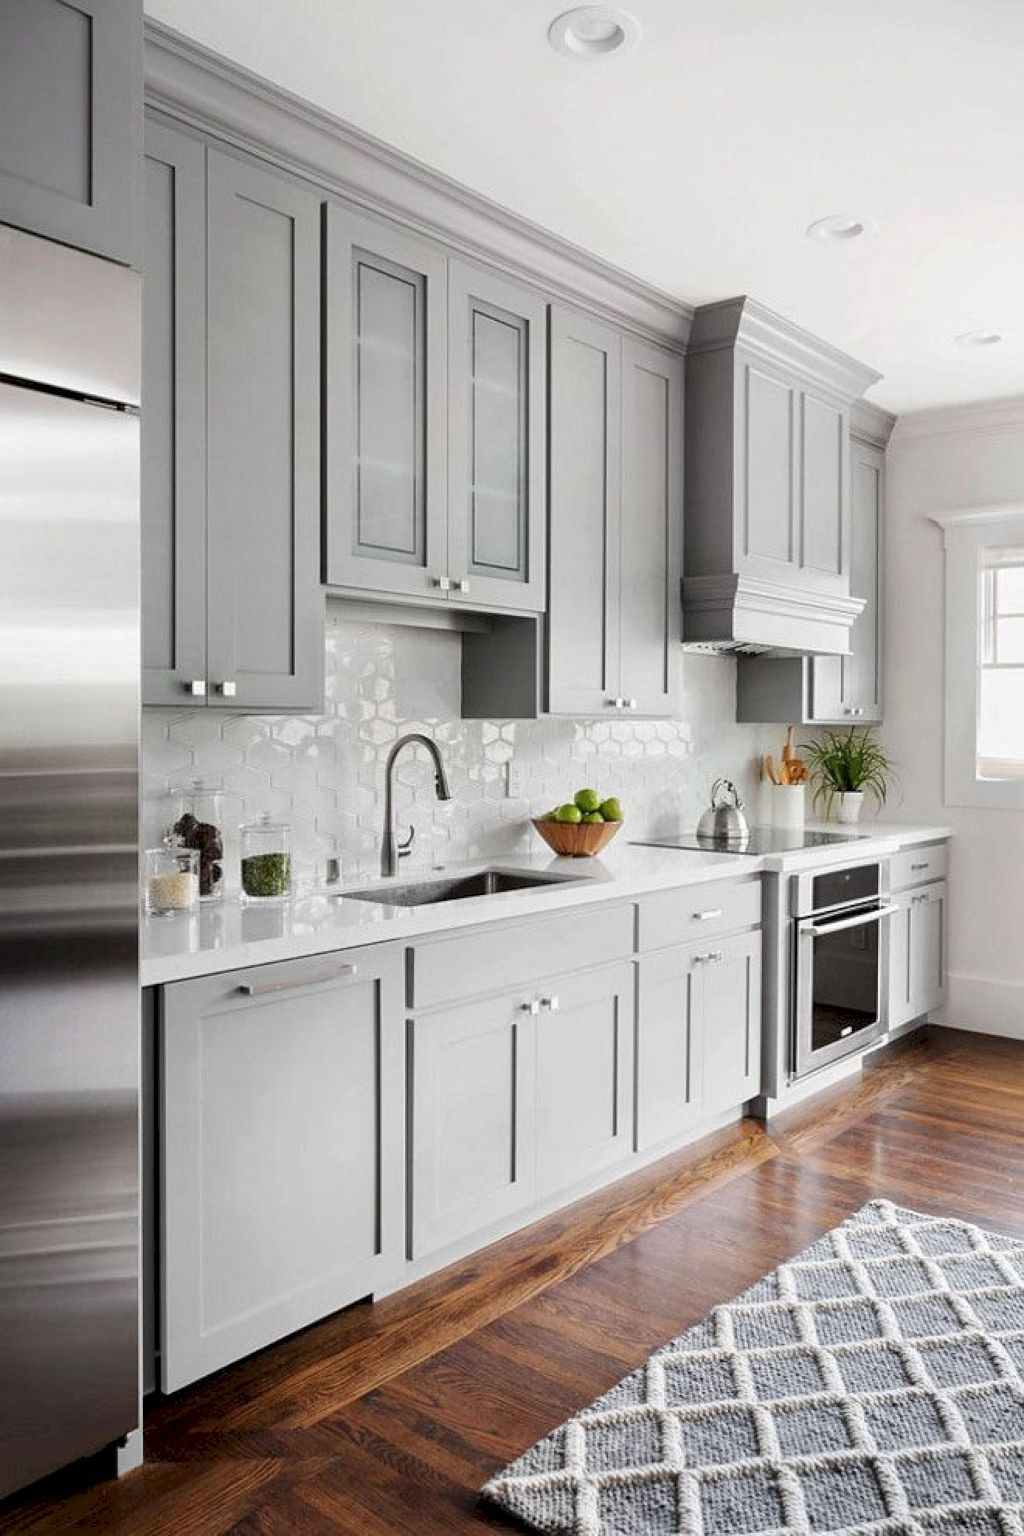 90 gorgeous kitchen cabinets design and decor ideas for the home rh pinterest com